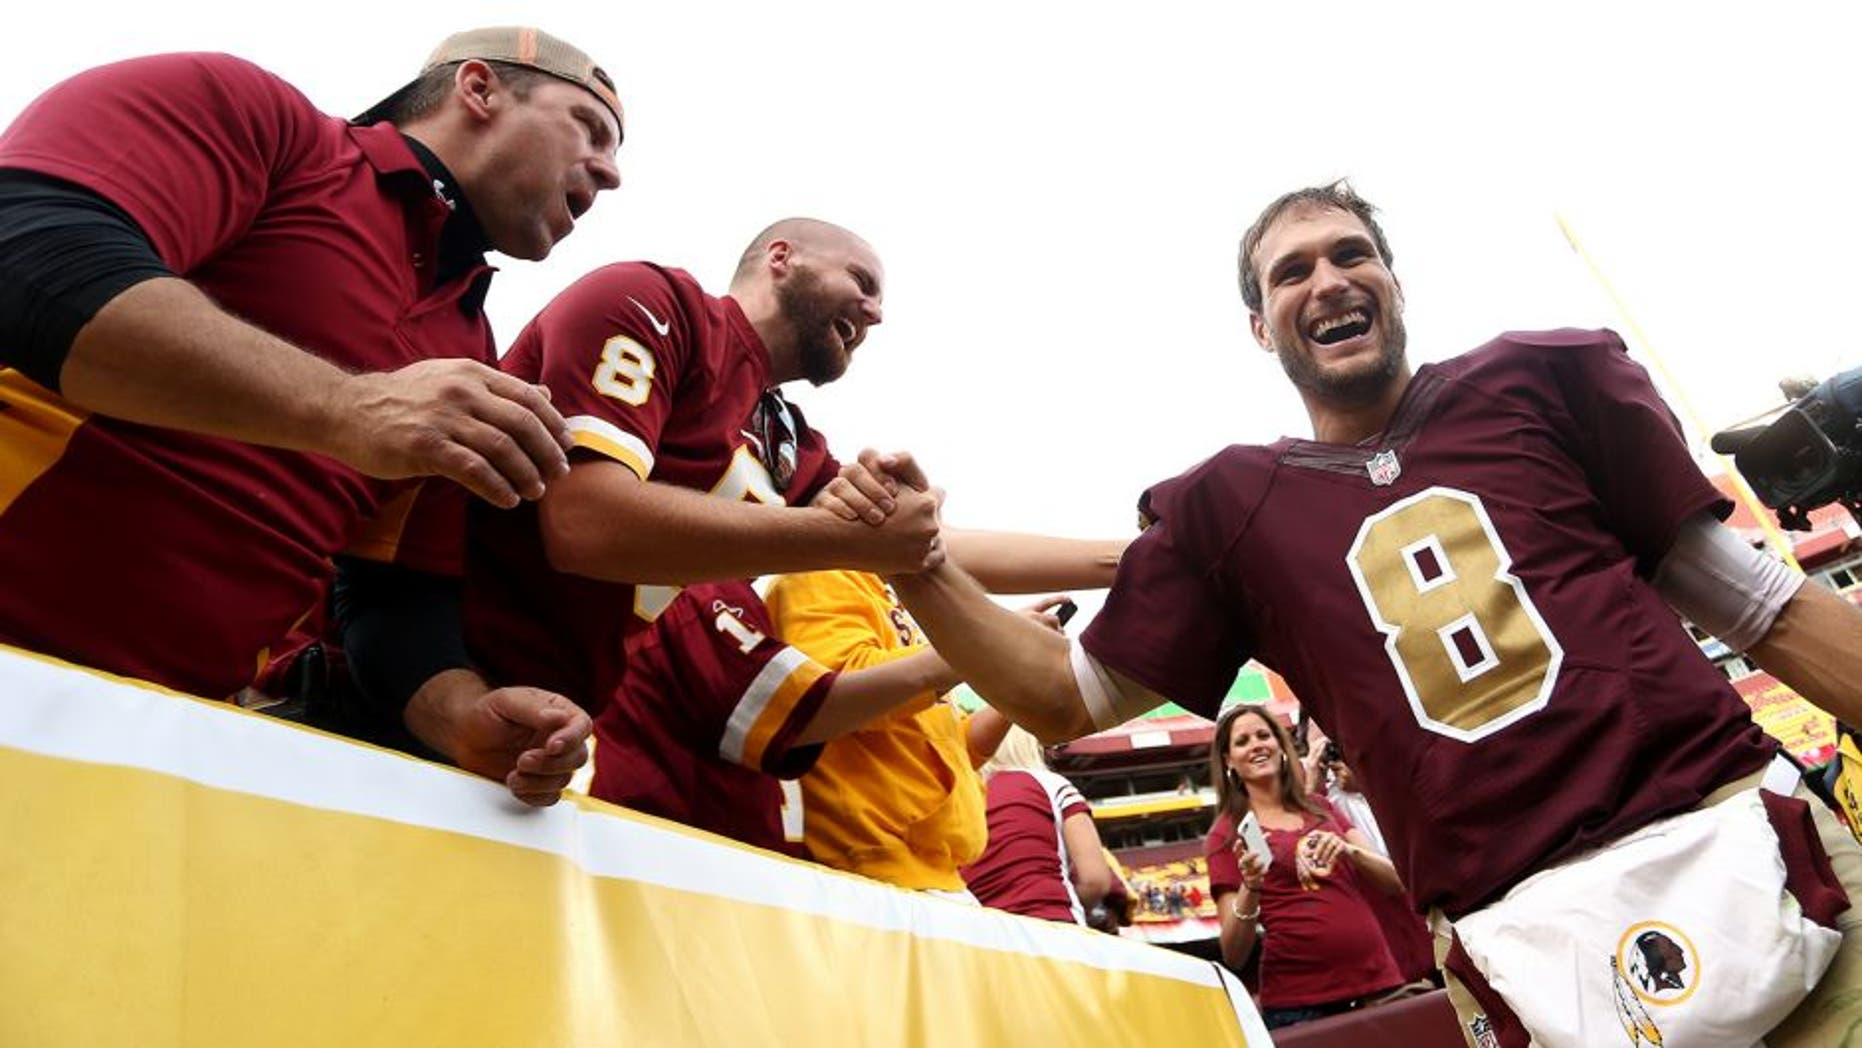 LANDOVER, MD - OCTOBER 25: Quarterback Kirk Cousins #8 of the Washington Redskins celebrates with fans after defeating the Tampa Bay Buccaneers 31-30 during a game at FedExField on October 25, 2015 in Landover, Maryland. (Photo by Matt Hazlett/Getty Images)